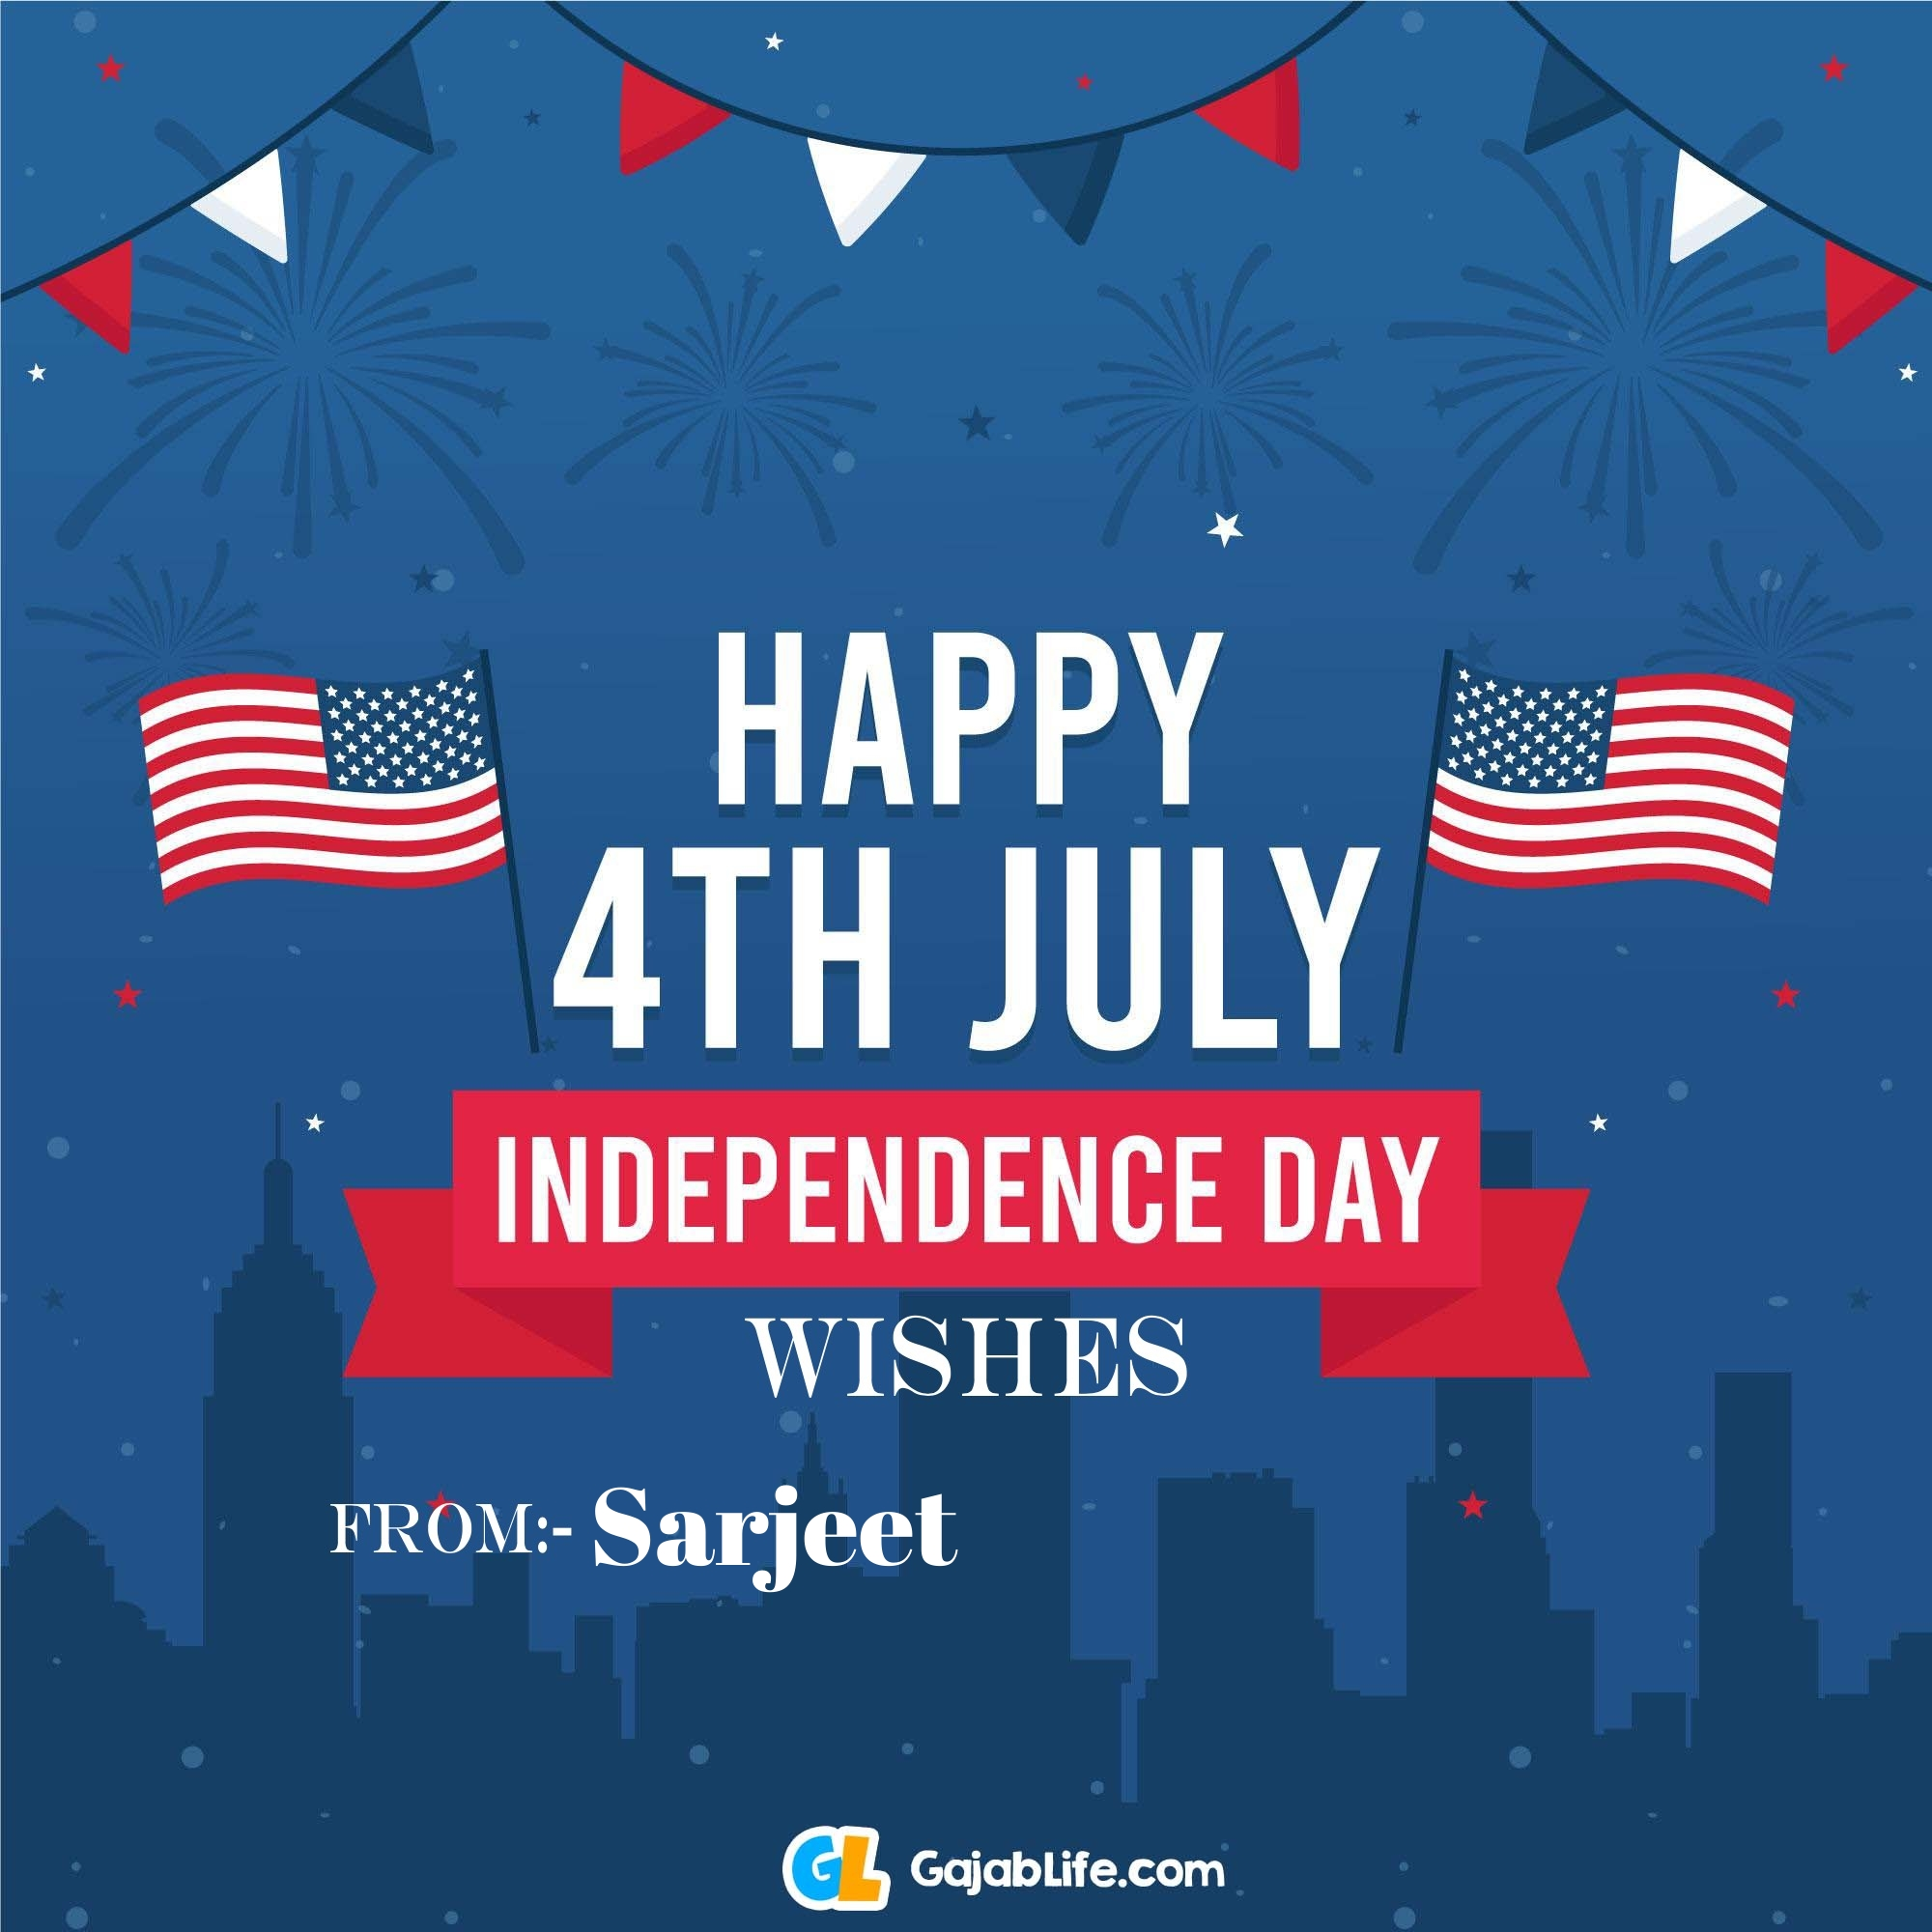 Sarjeet happy independence day united states of america images